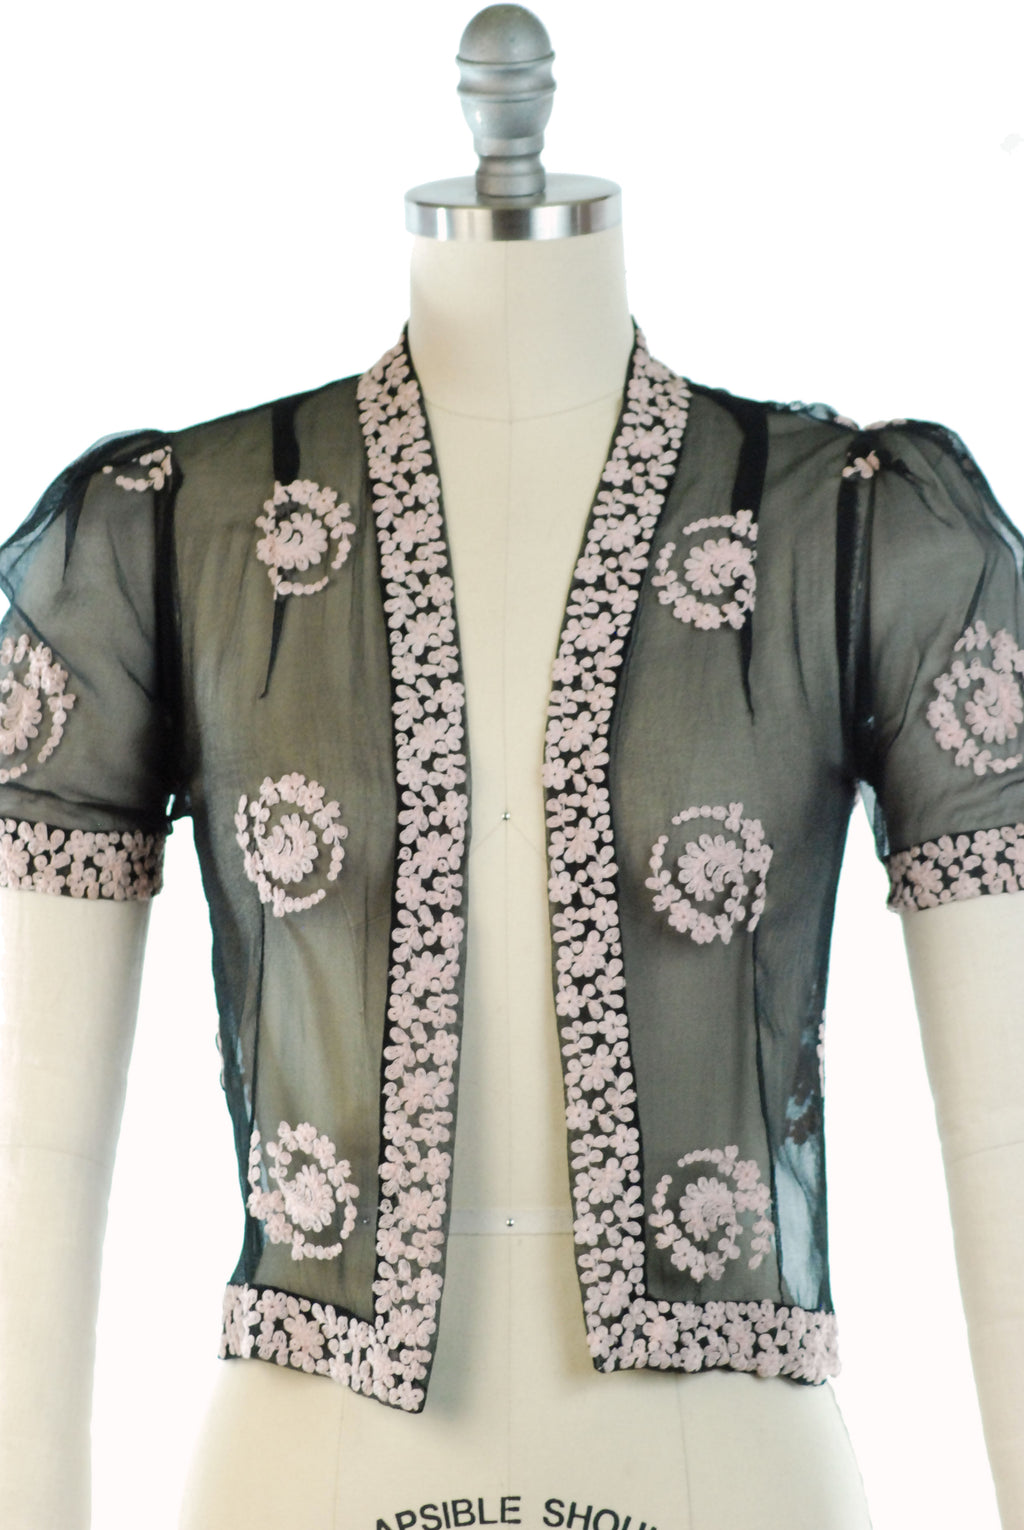 Gorgeous 1930s Bolero Blouse in Sheer Black Chiffon with Pink Tambour Lace